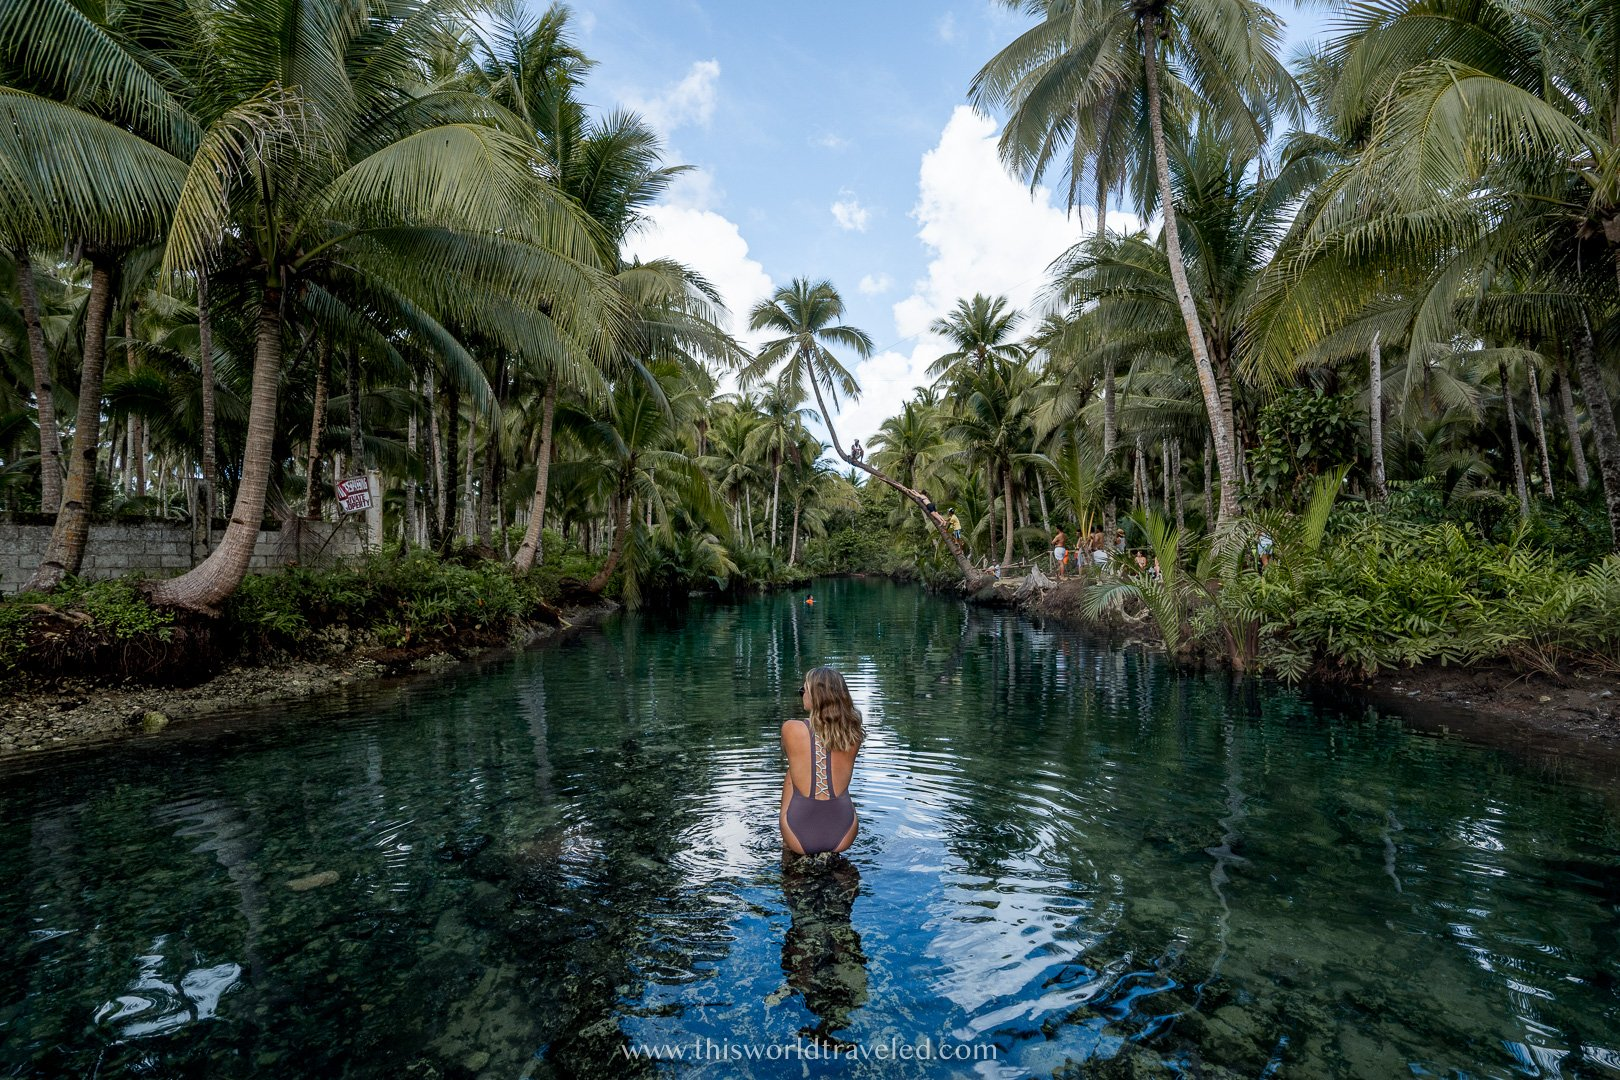 Girl in a bathing suit sitting in a river in the Philippines surrounded by coconut palm trees